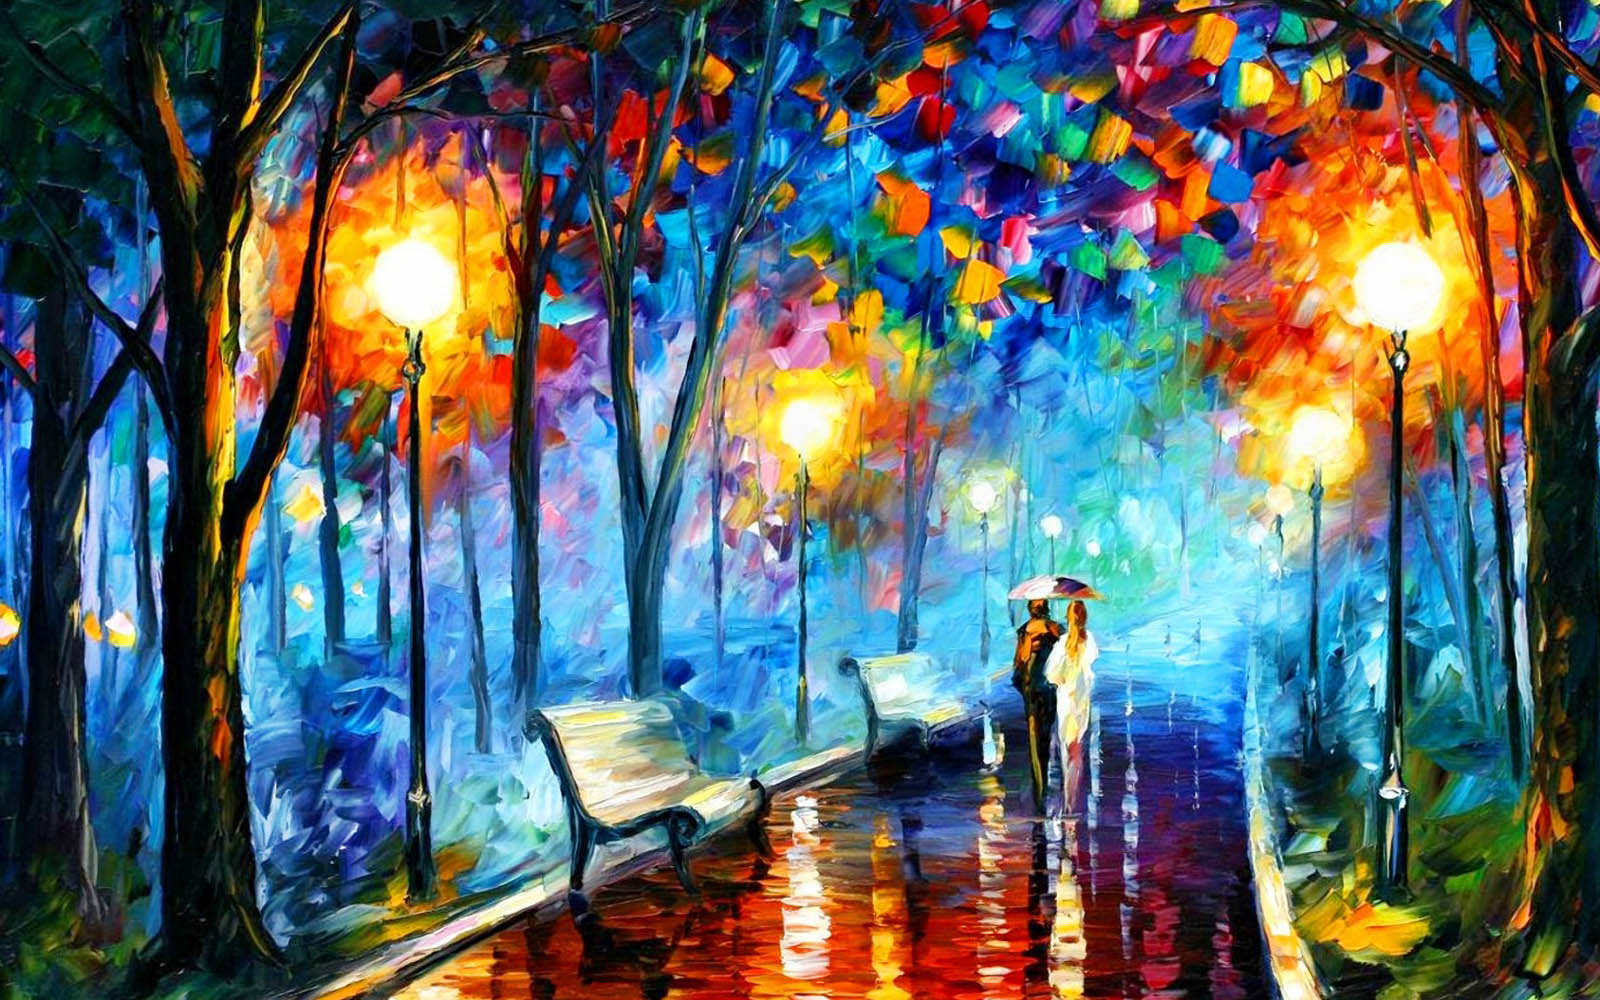 Tag Abstract Paintings Wallpapers BackgroundsPhotos Images and 1600x1000